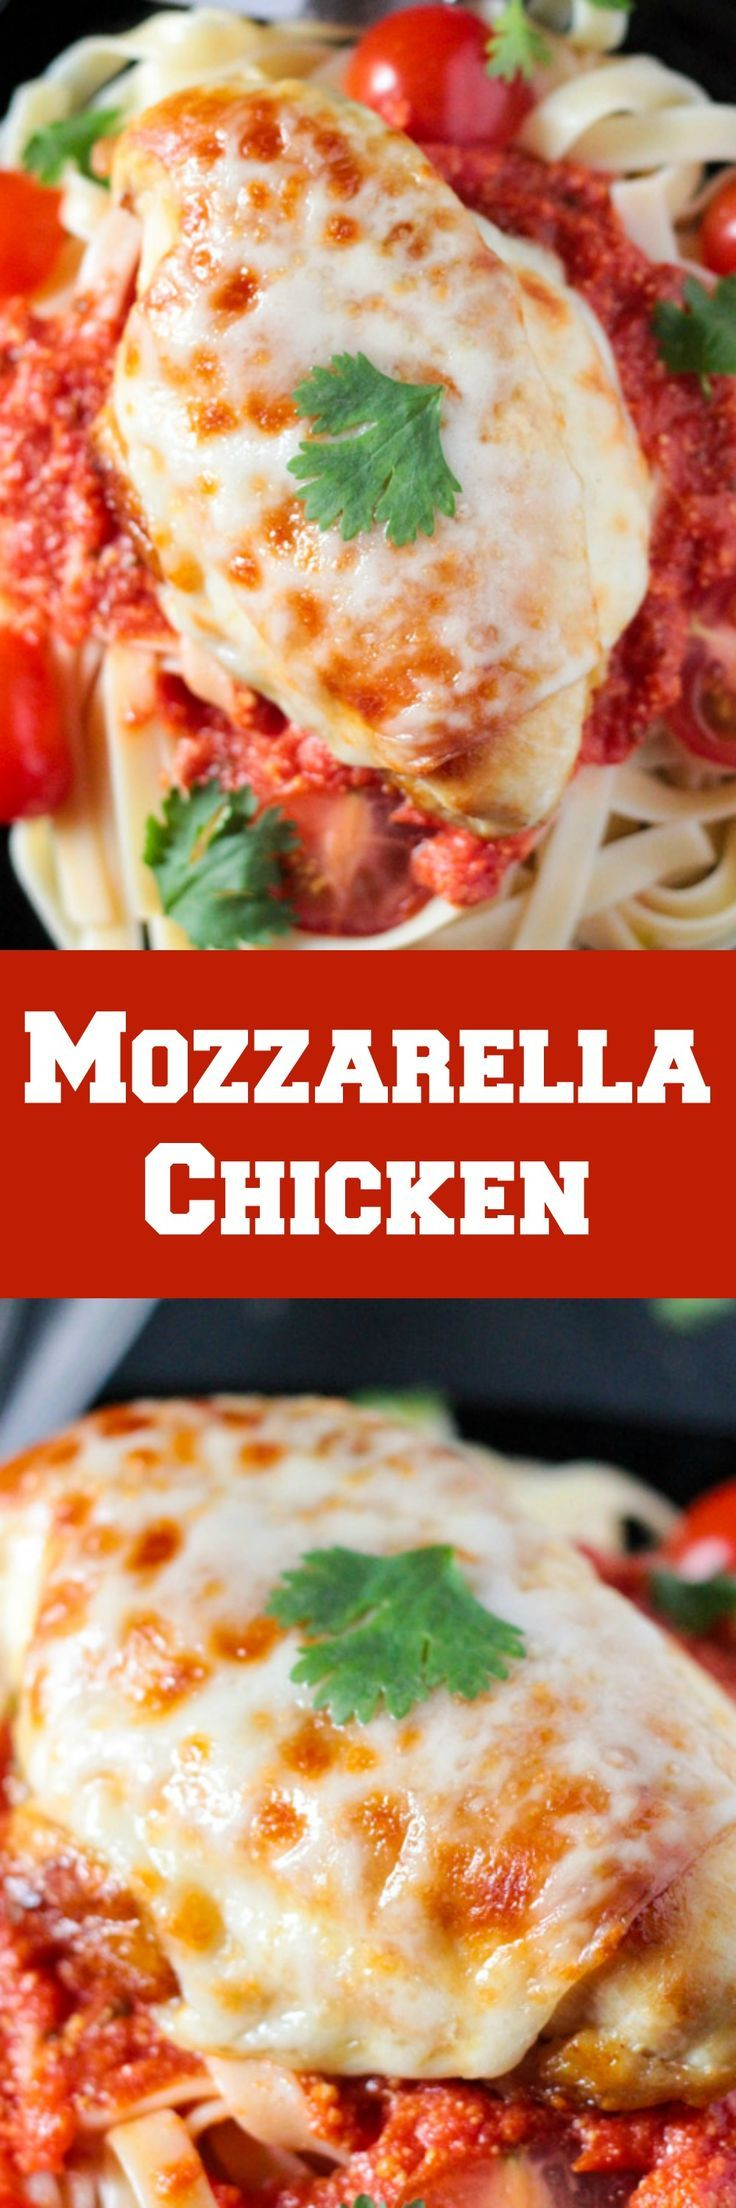 This 20 Minute Chicken Mozzarella is a quick and delicious recipe which is a perfect alternative to when you are craving Parmgiana Chicken but are short on time!